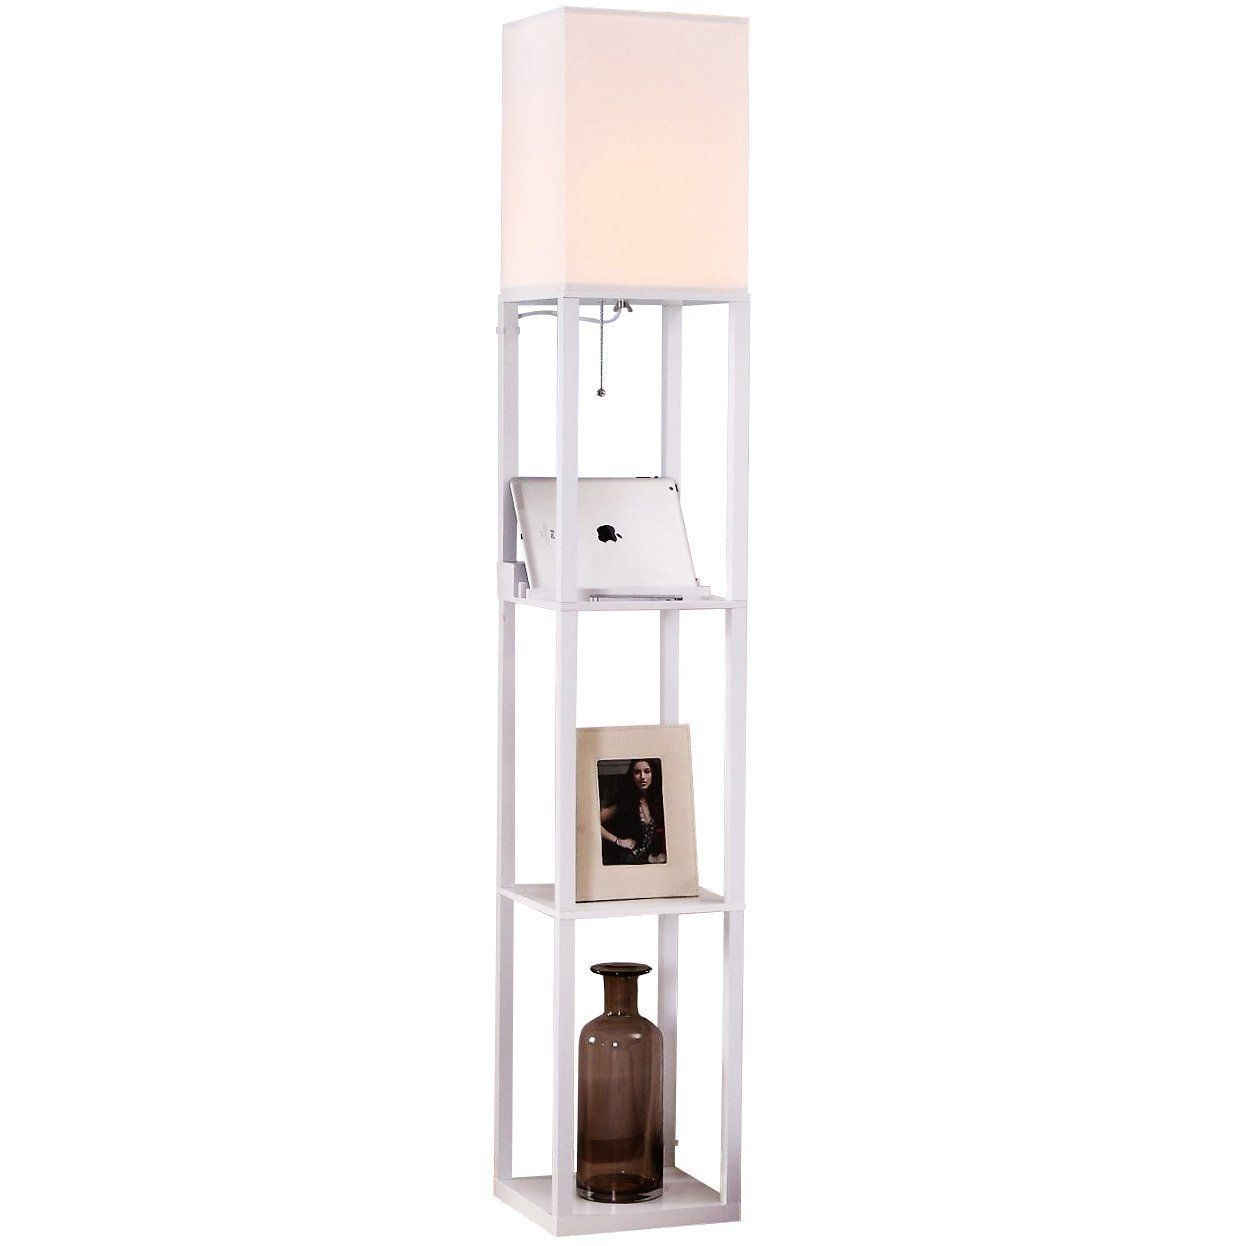 Brightech Maxwell Usb Shelf Floor Lamp Mood Lighting For Your Living Room And Bedroom Shade Diffused Light Source In A Natural Wood Floor Lamp With Shelves